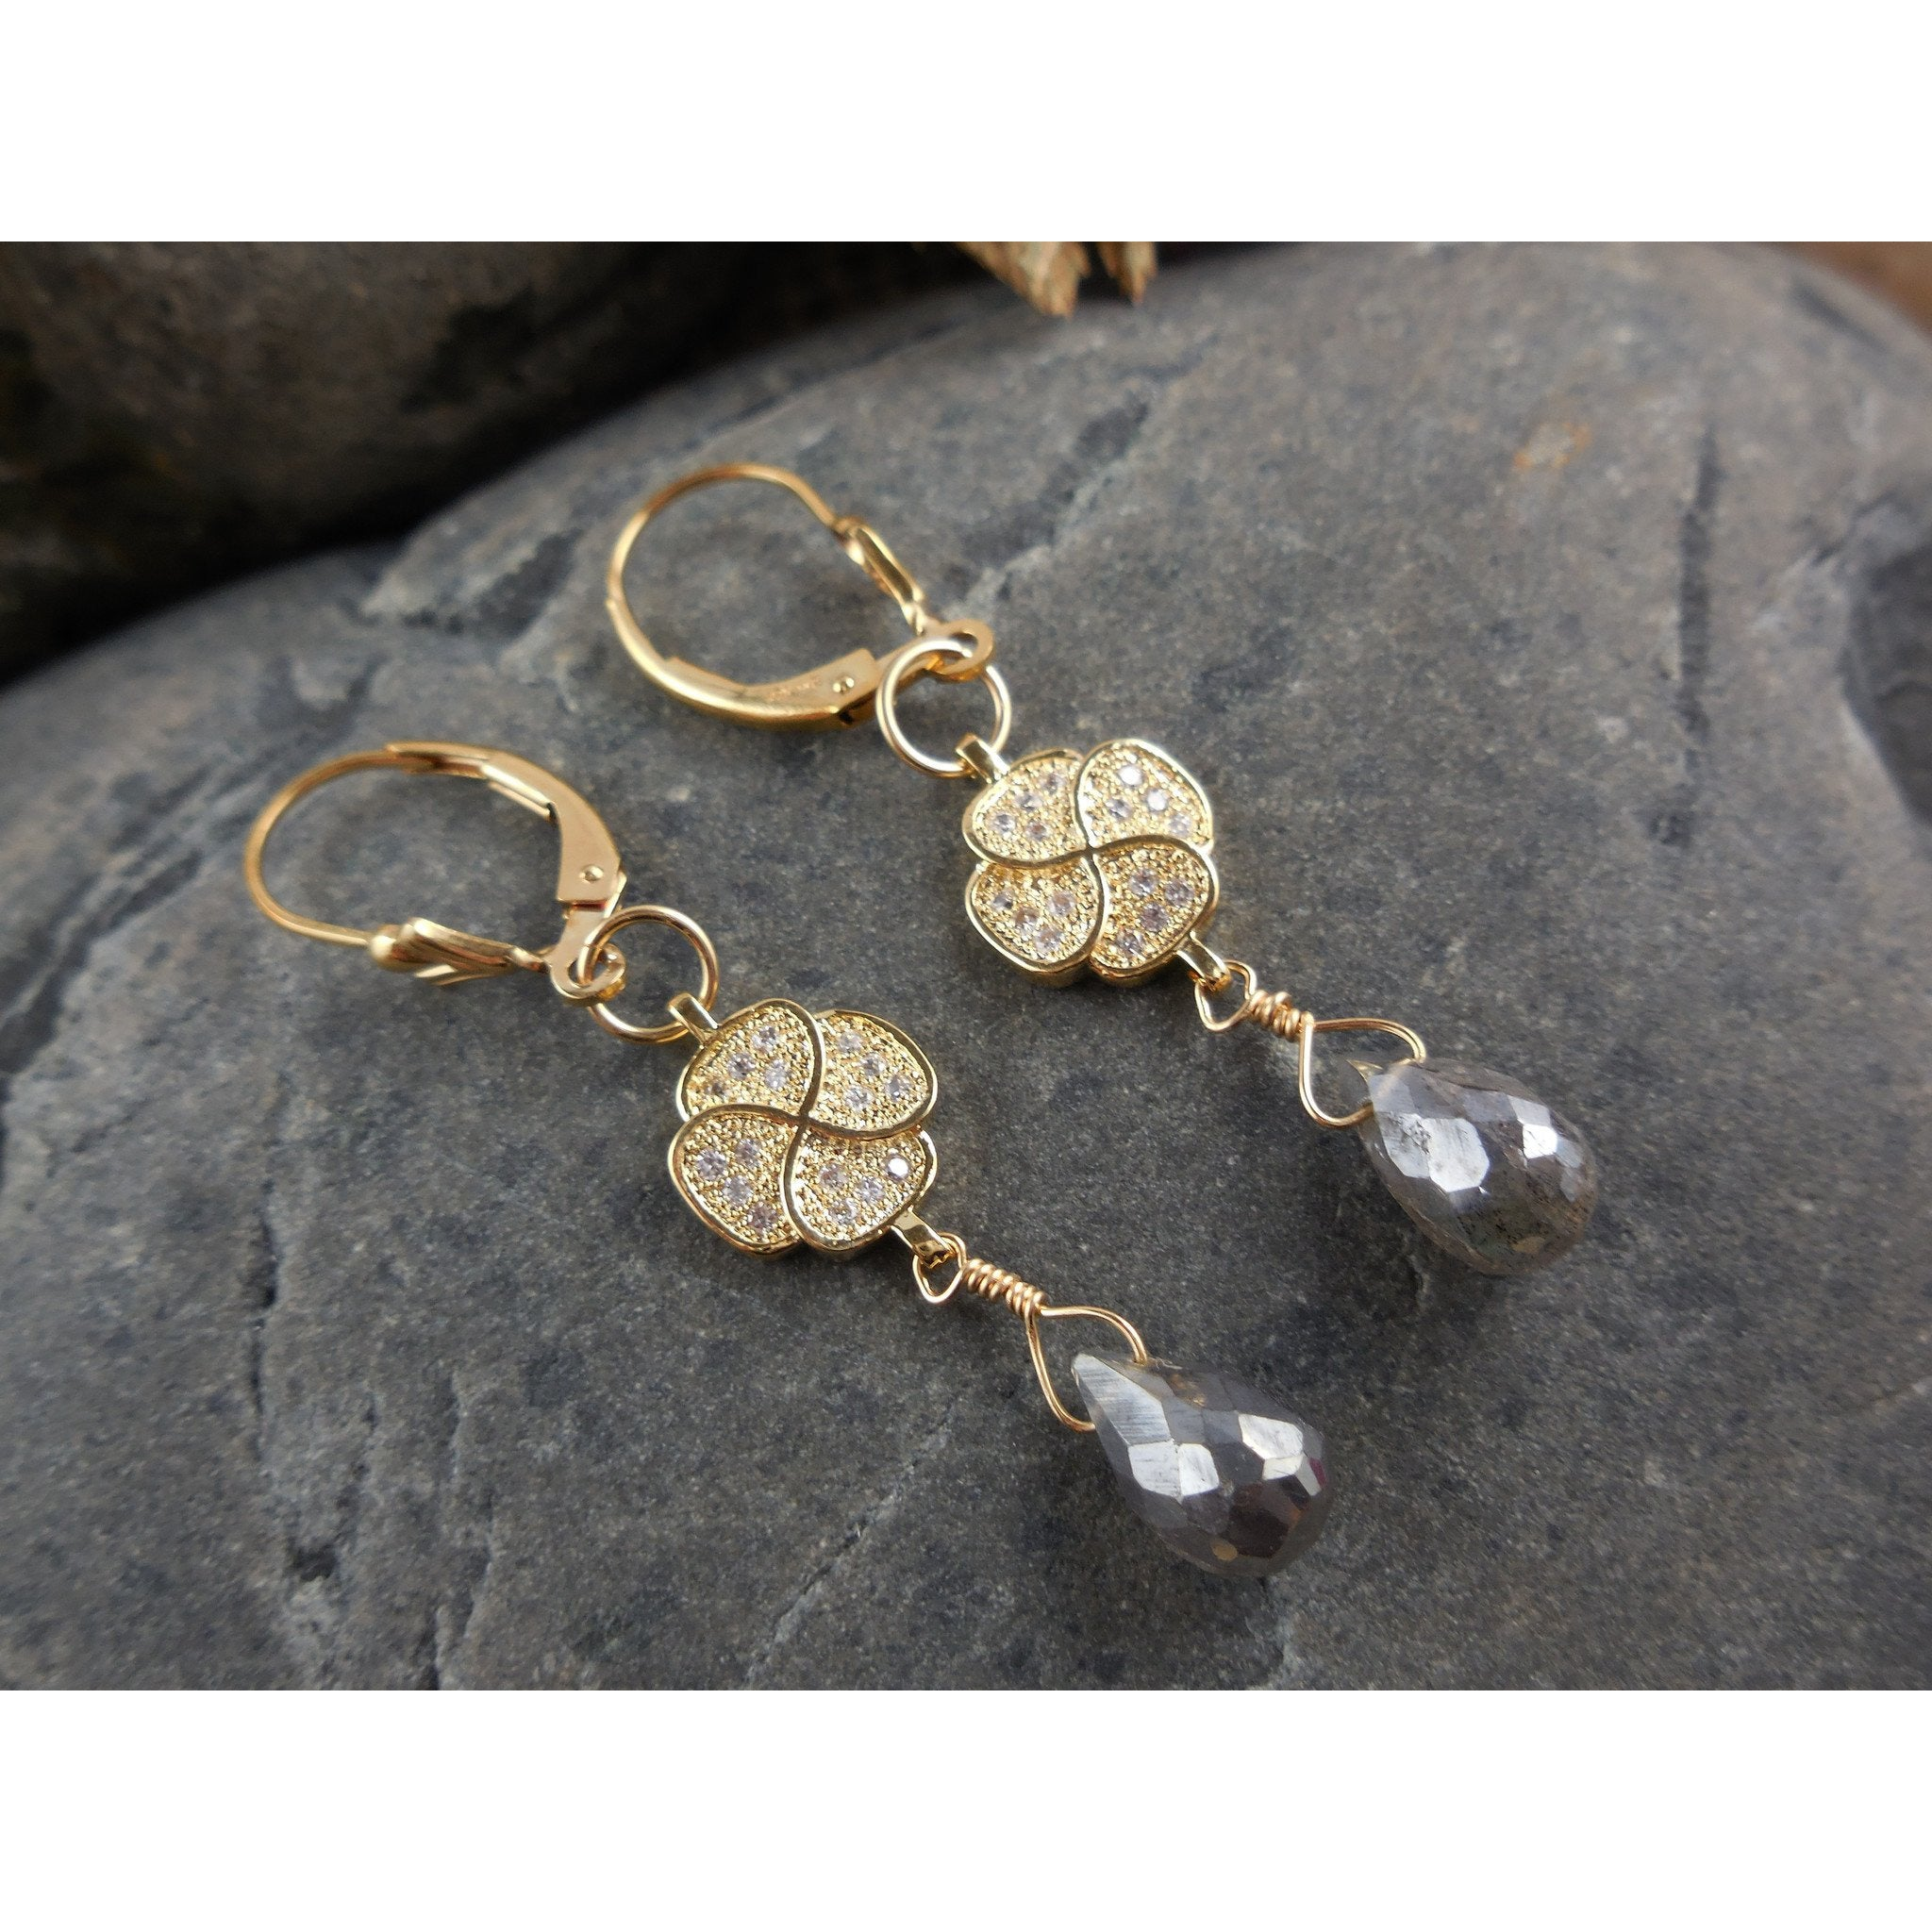 Gold-Filled Labradorite Gemstone Earrings